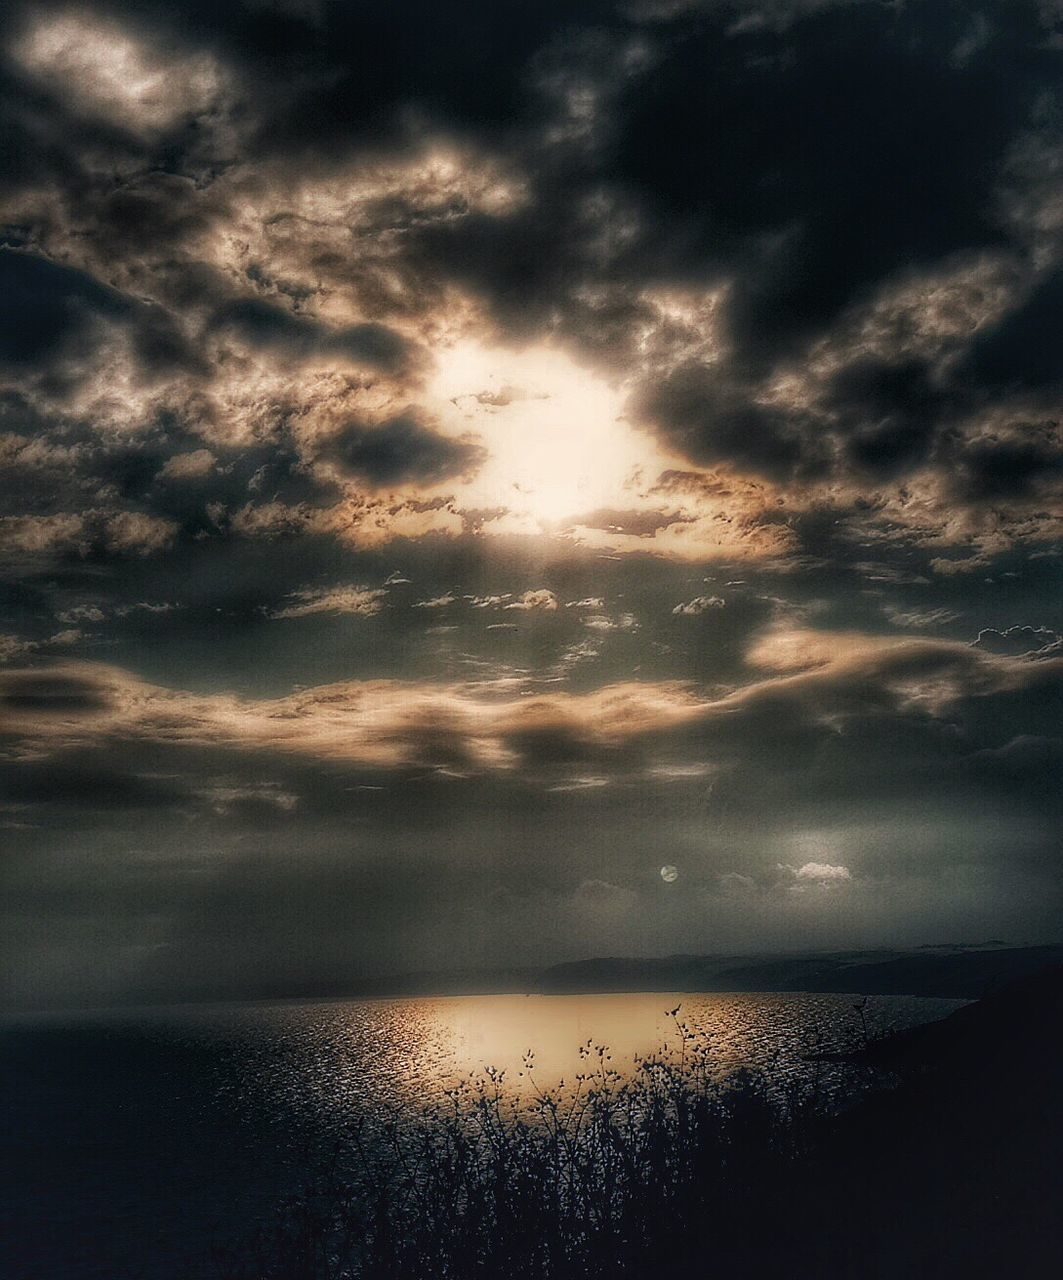 sunset, sky, scenics, cloud - sky, sea, tranquil scene, tranquility, beauty in nature, horizon over water, water, no people, nature, reflection, dramatic sky, idyllic, sun, silhouette, awe, sunlight, outdoors, day